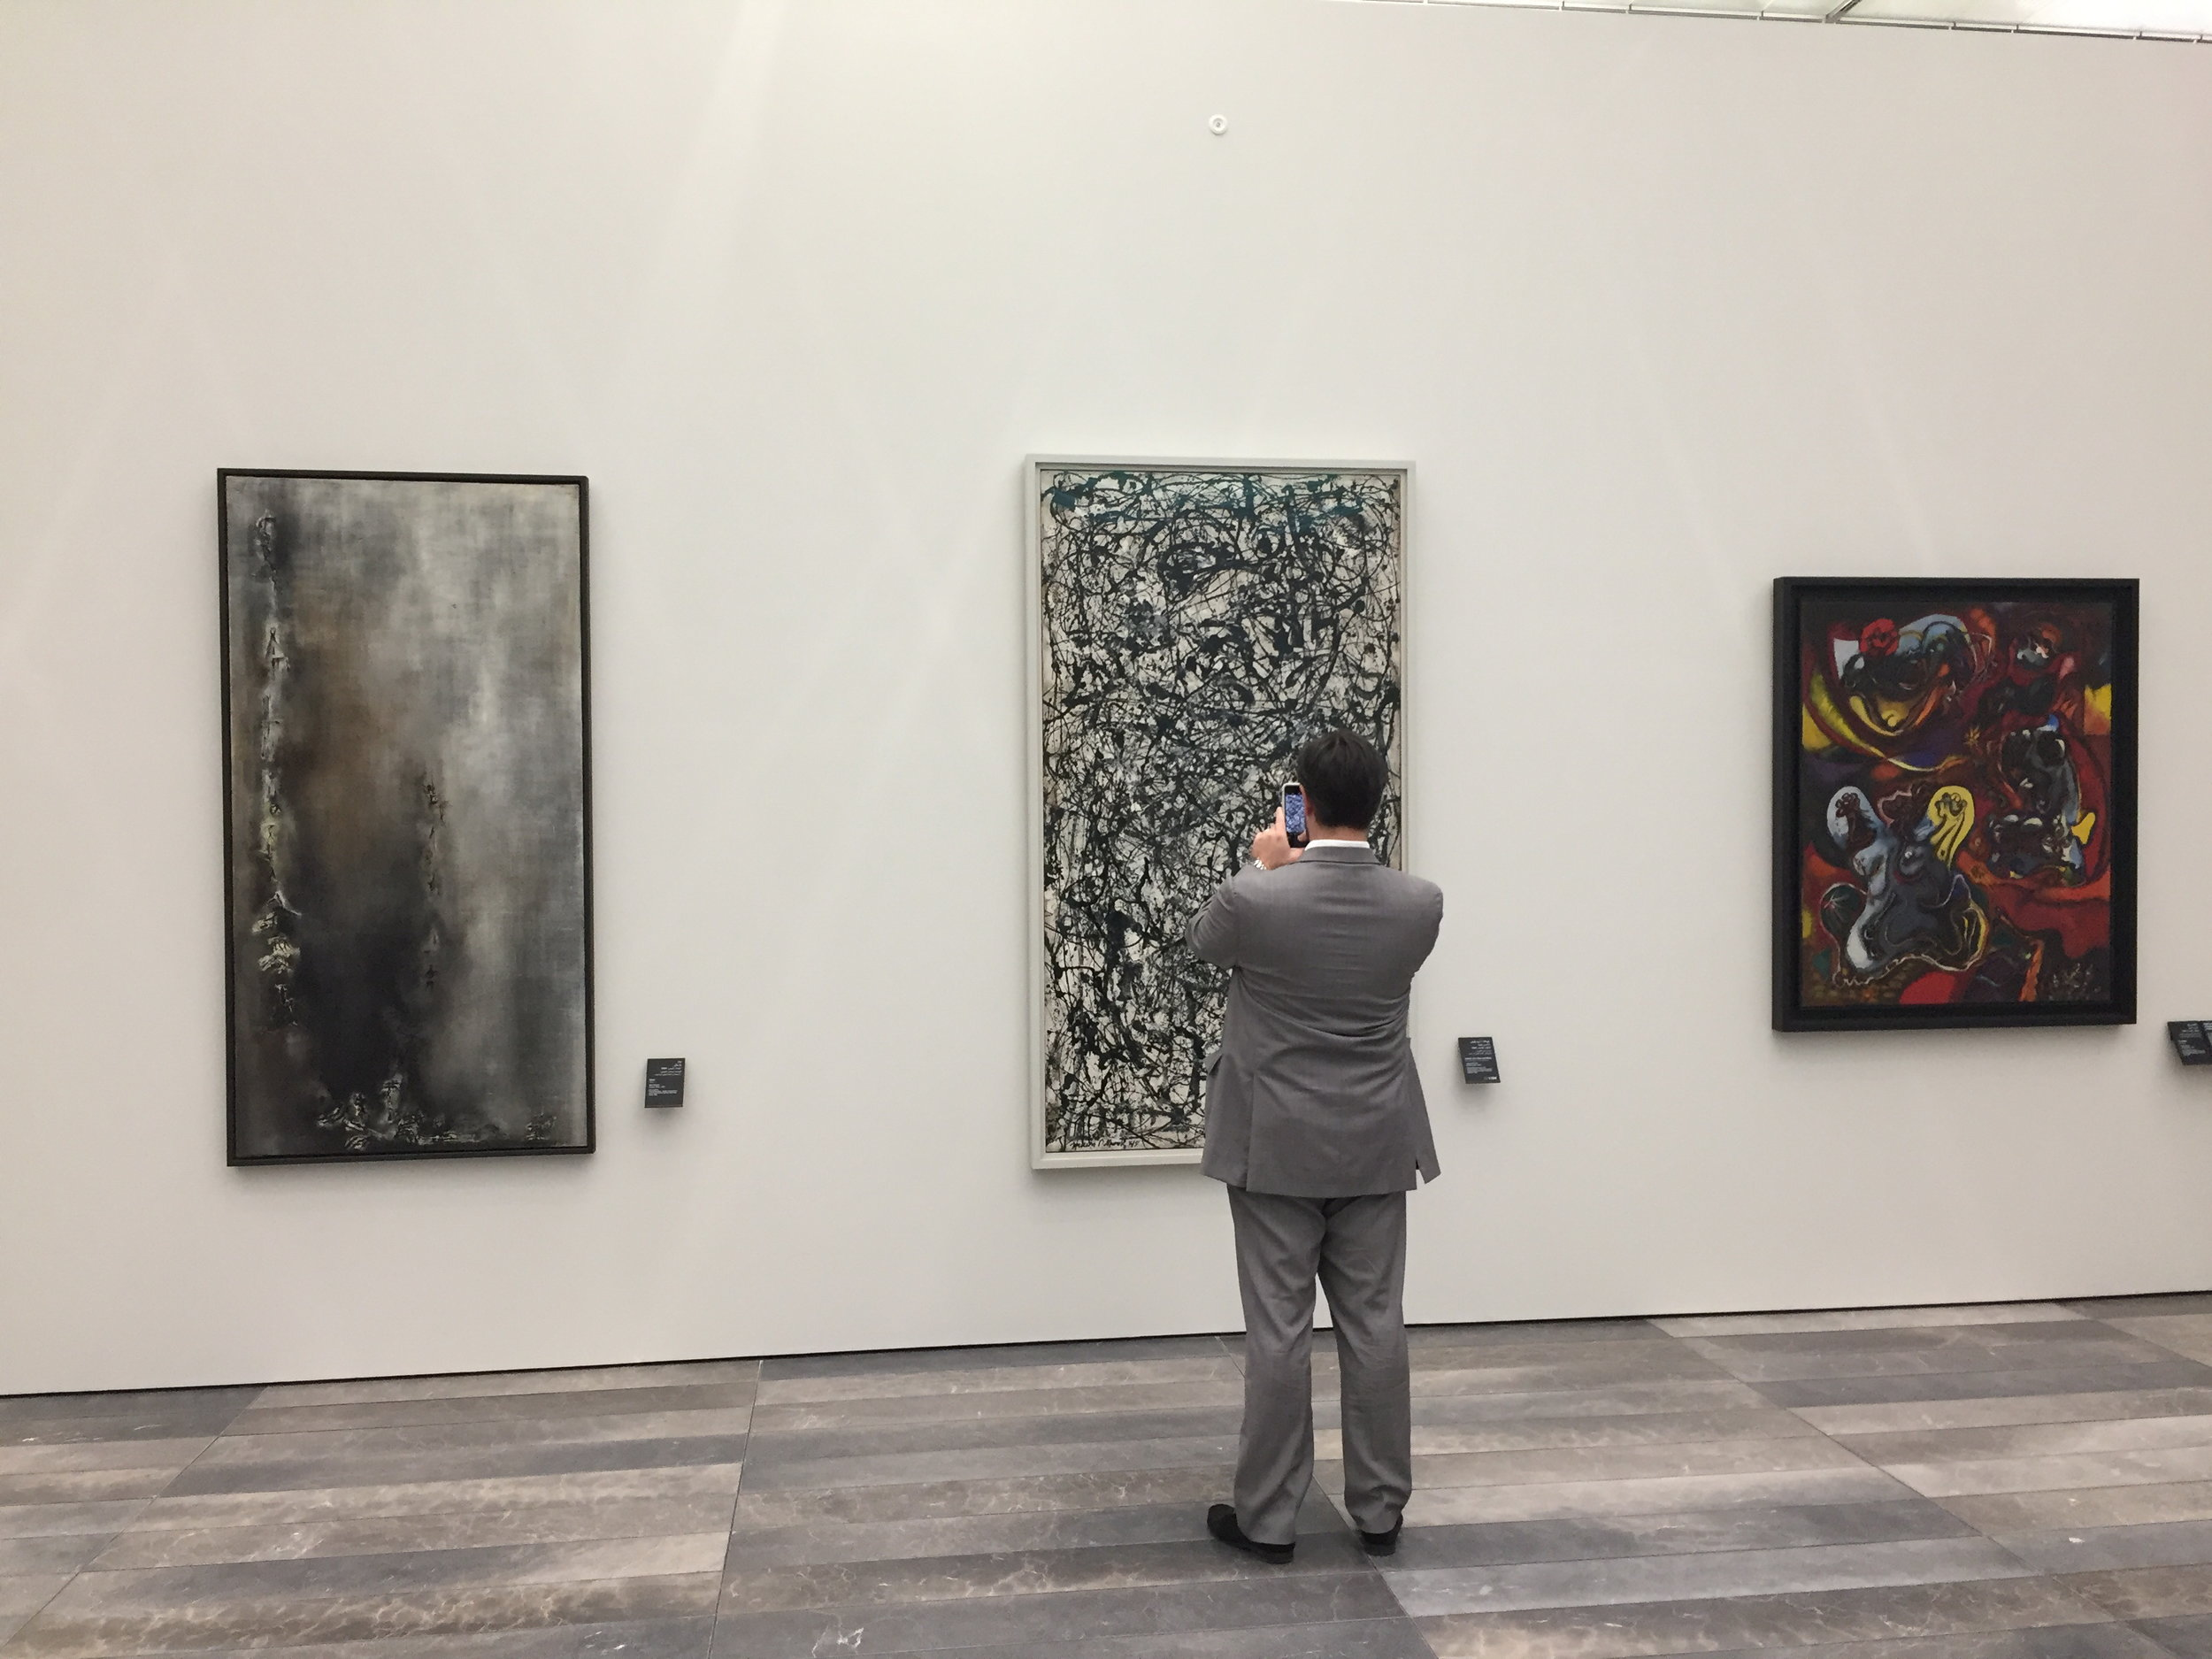 Zao Wou-Ki and Jackson Pollock at the Abu Dhabi Louvre Museum. Photo by E. Clavé